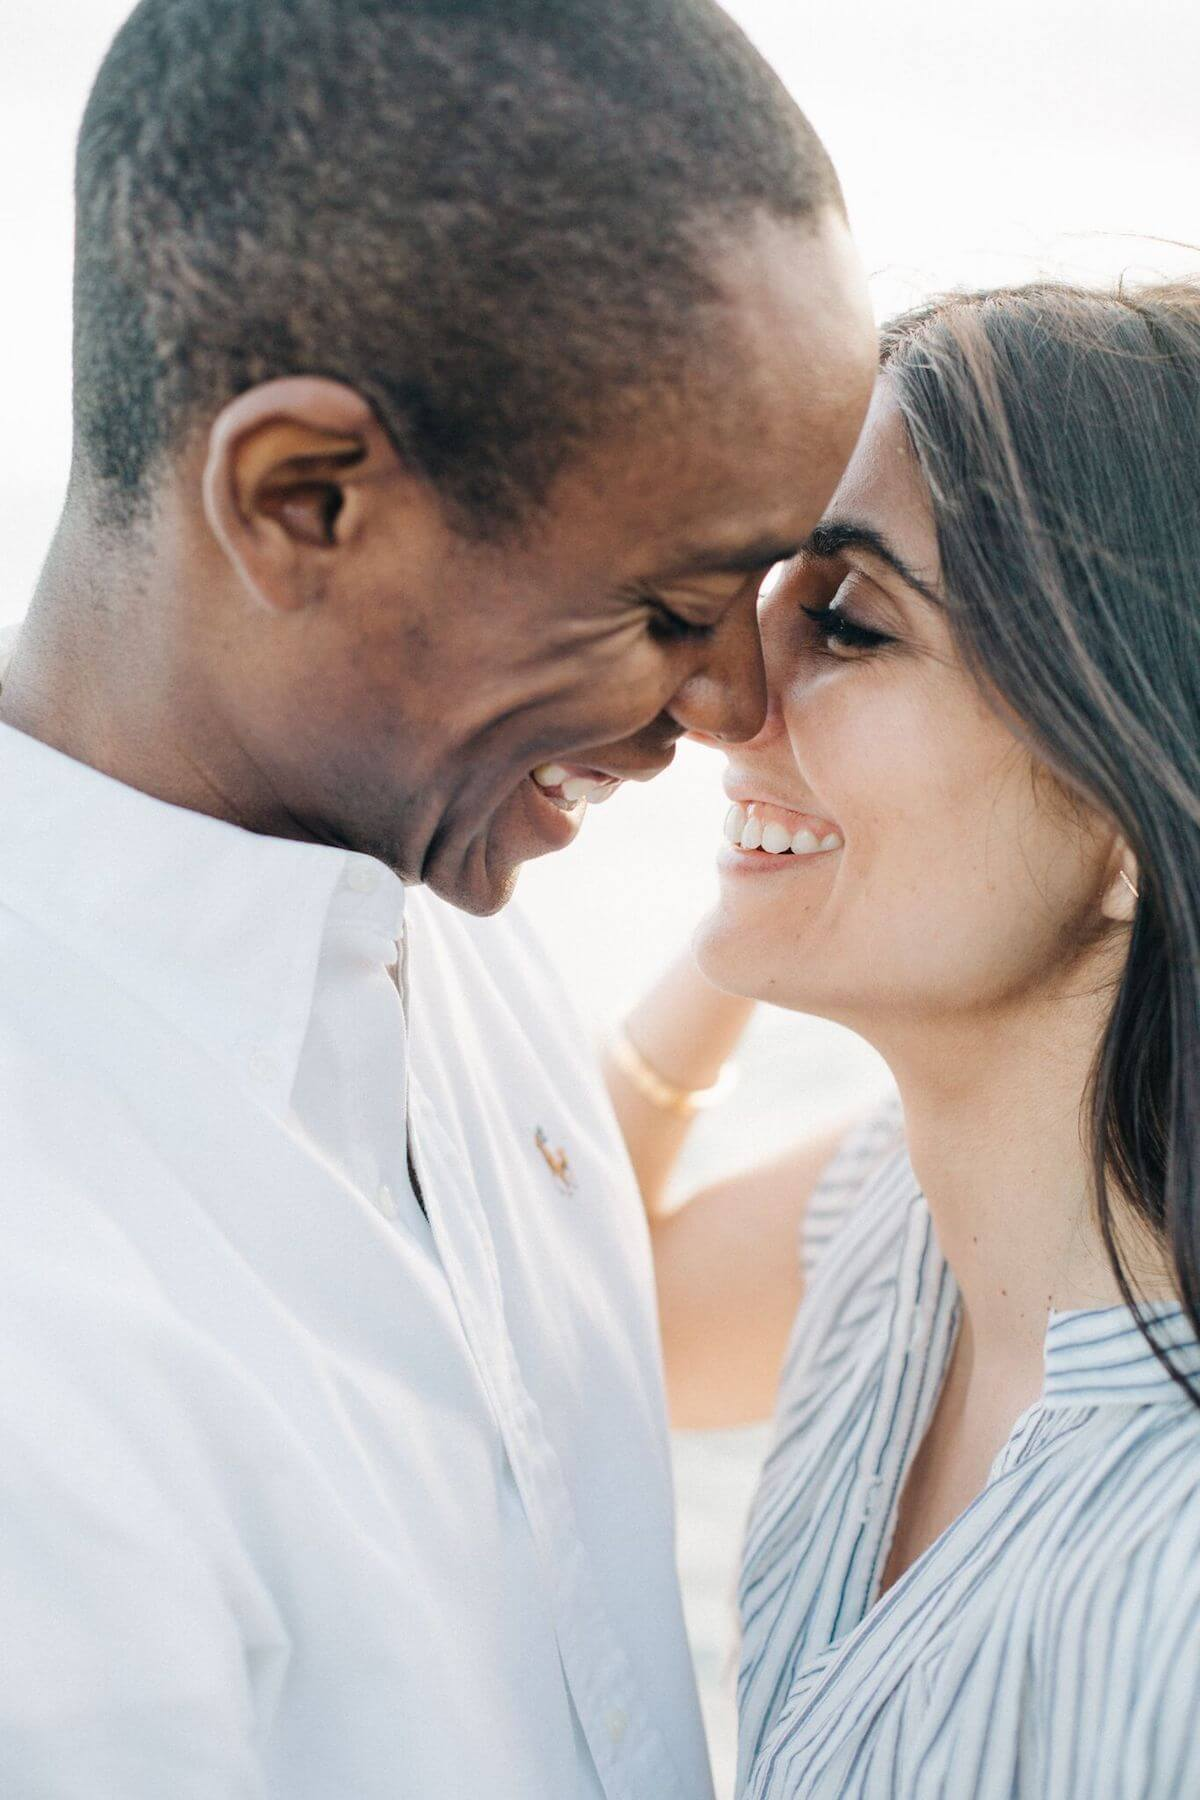 Photo of couple taken at initial test shoot when choosing a wedding photographer